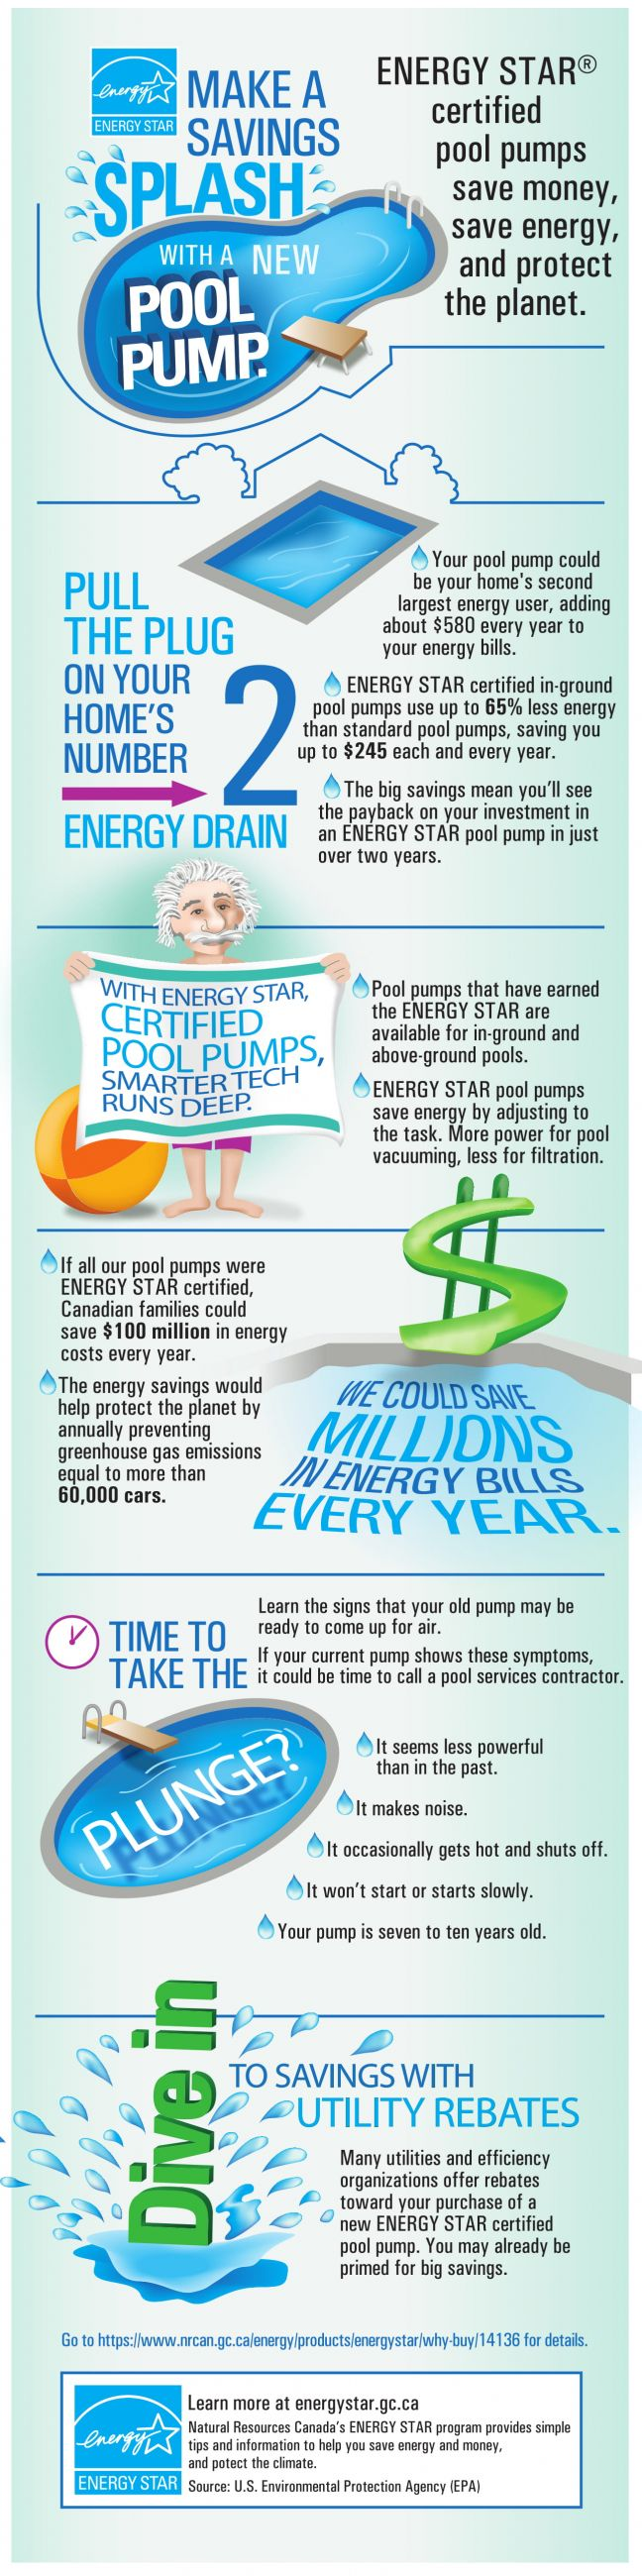 Pool pump infographic